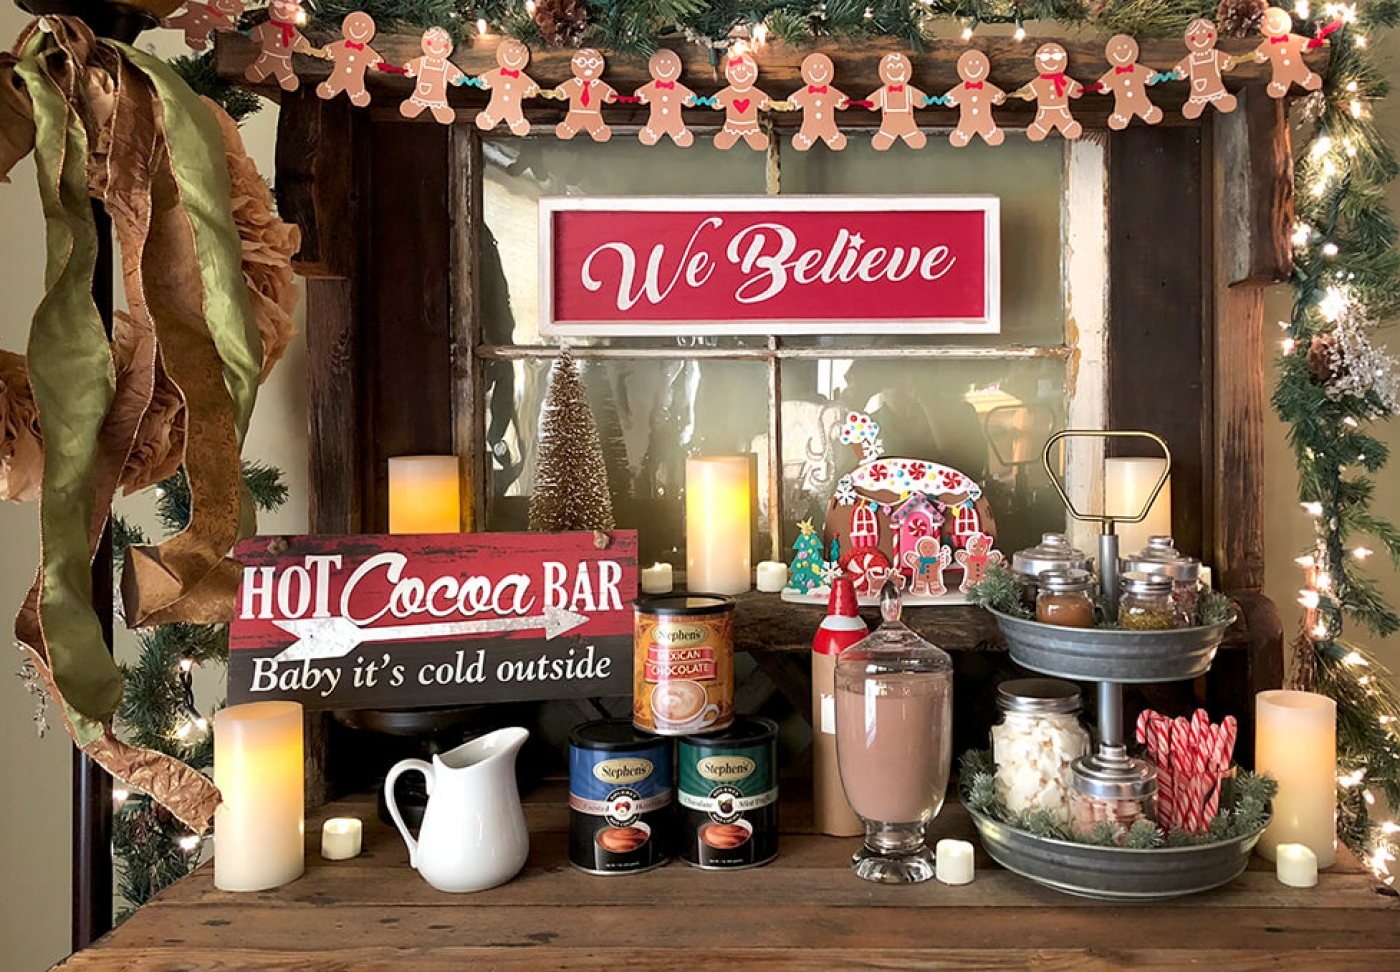 We believe in hot chocolate bars for Christmas!